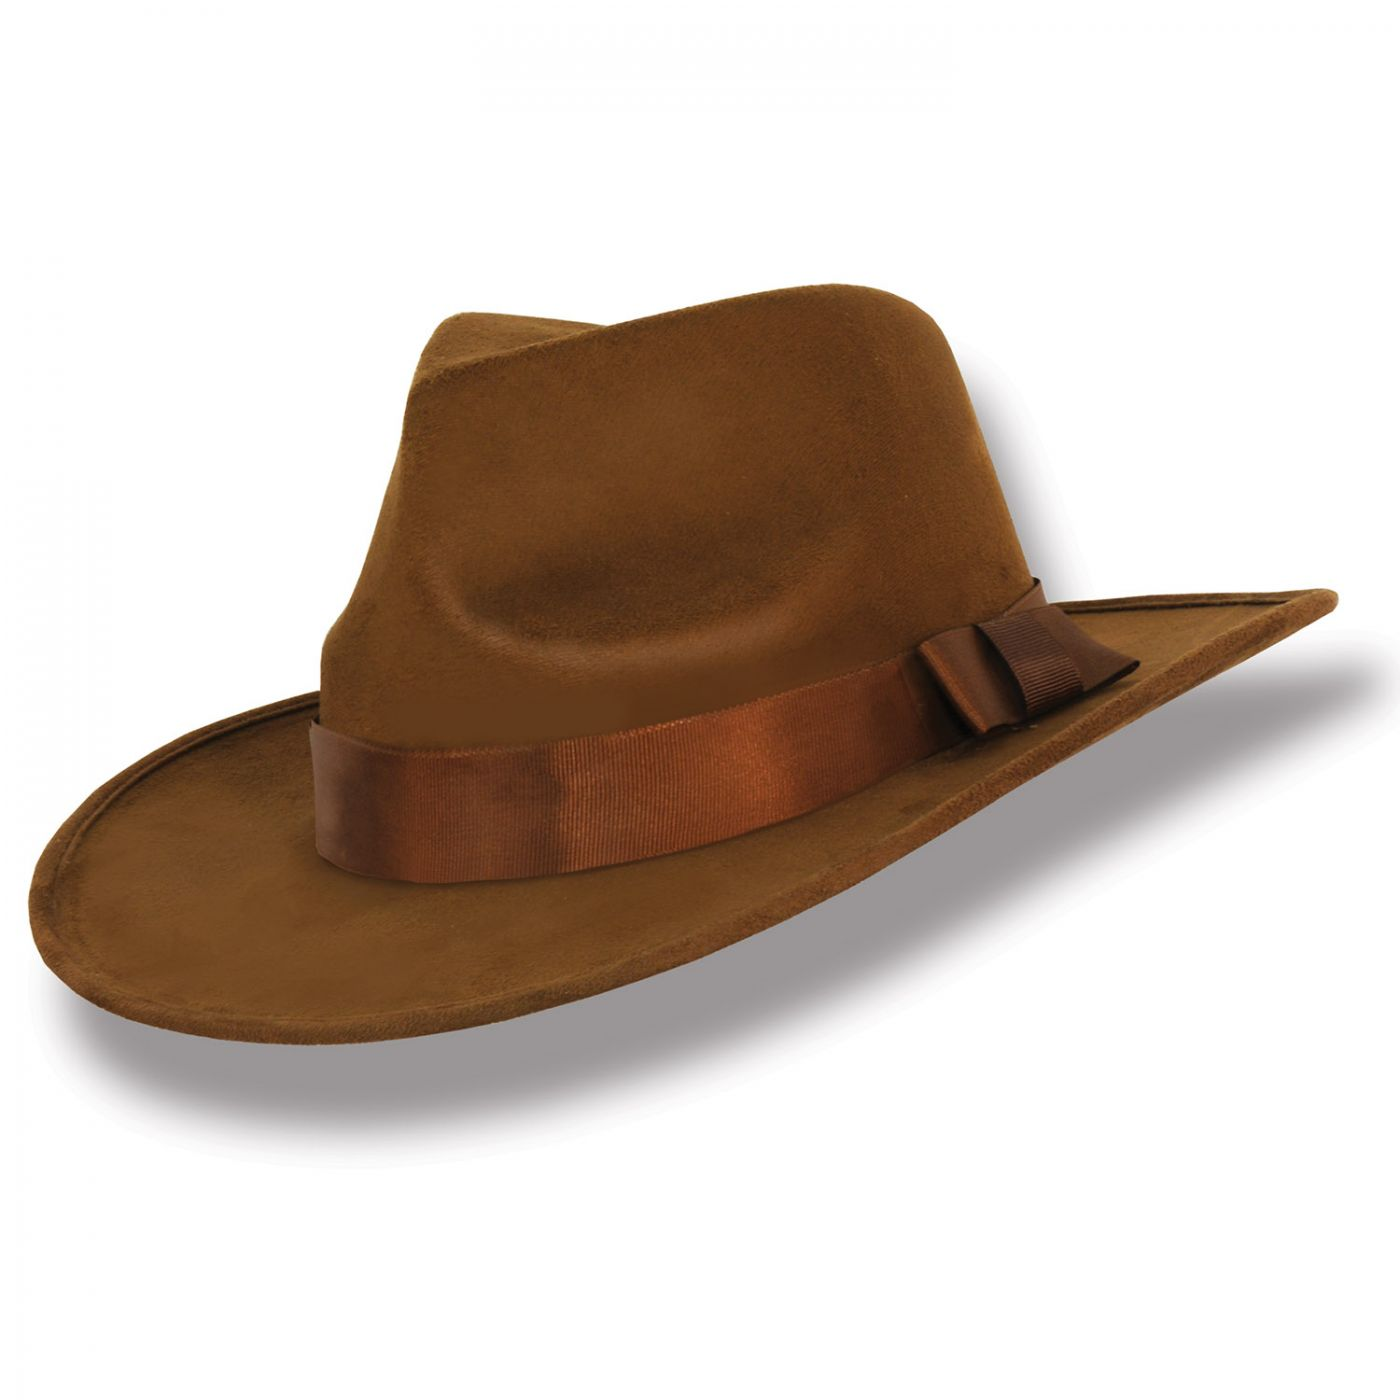 Image of Brown Fabric Fedora Hat (6)